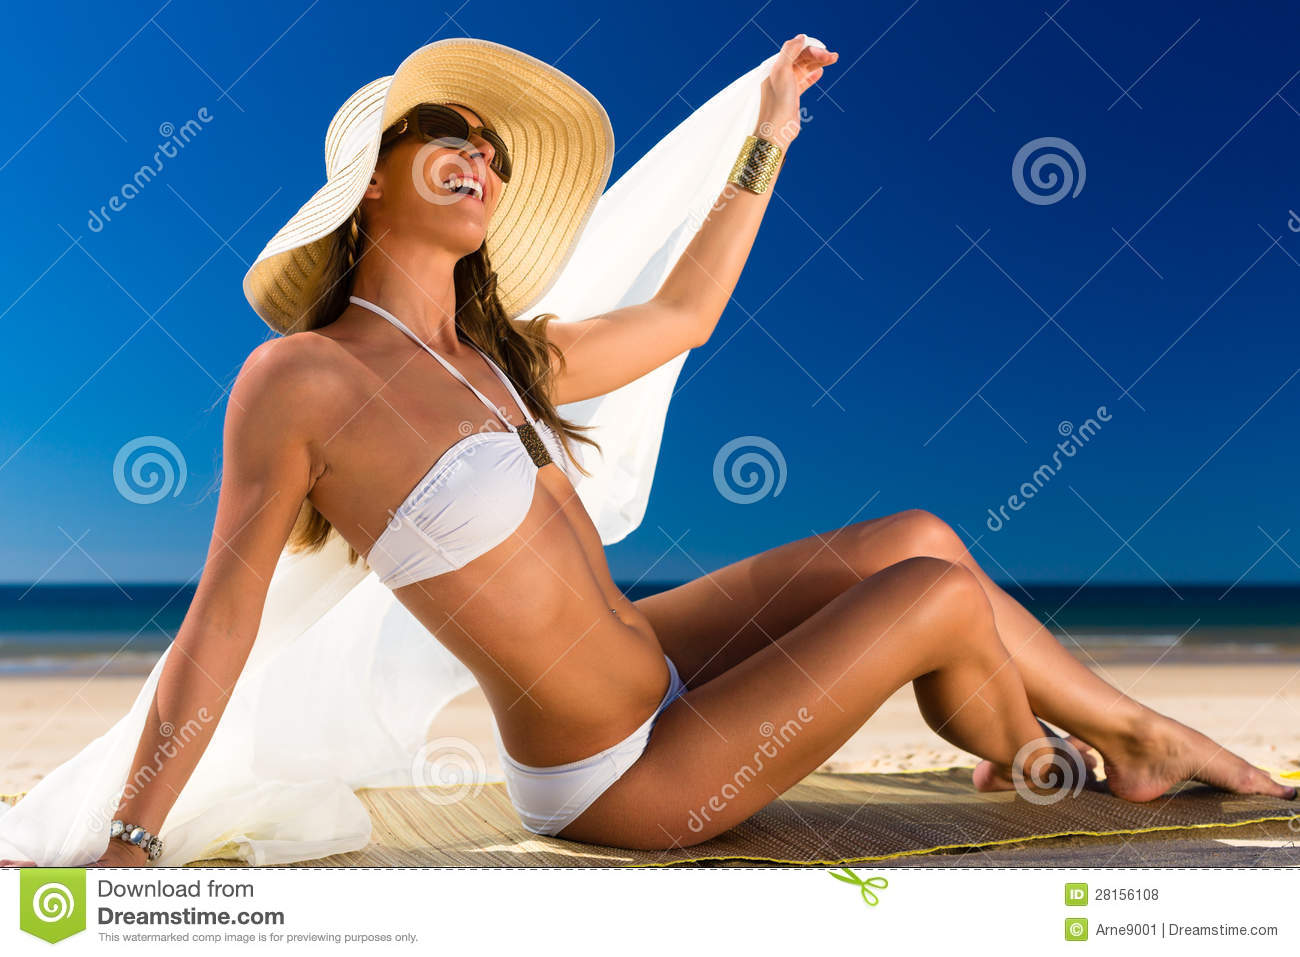 Download Attractive Woman In A Bikini Smiles At The Sun At The Beach Stock Photo - Image of water, sunlit: 28156108